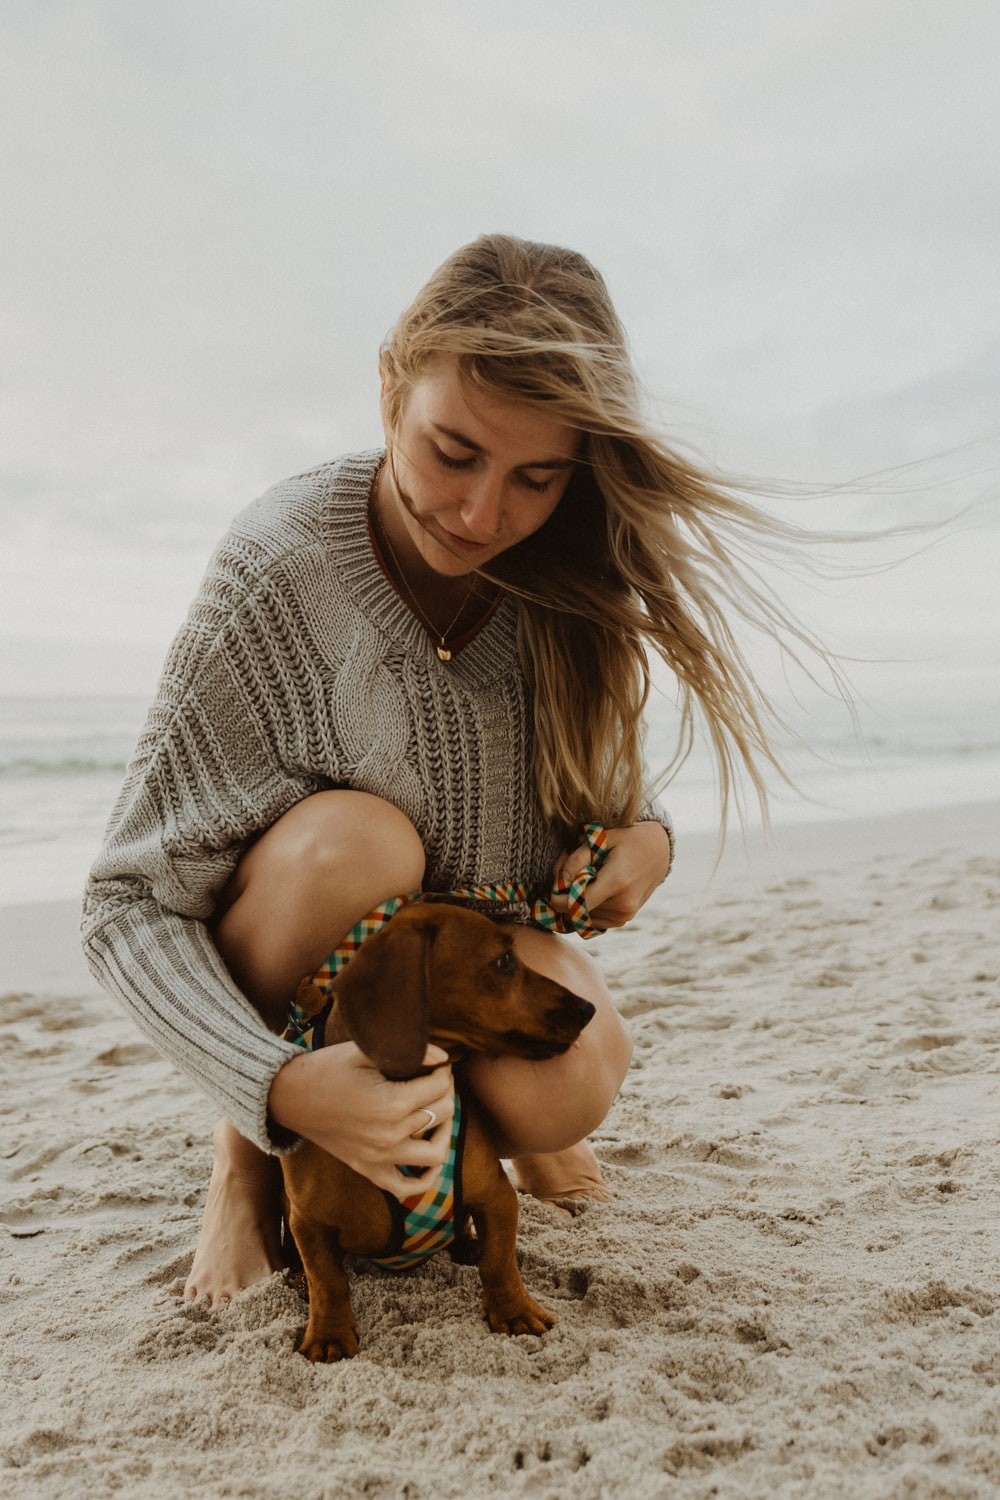 woman in gray knit sweater hugging brown short coated dog on beach during daytime